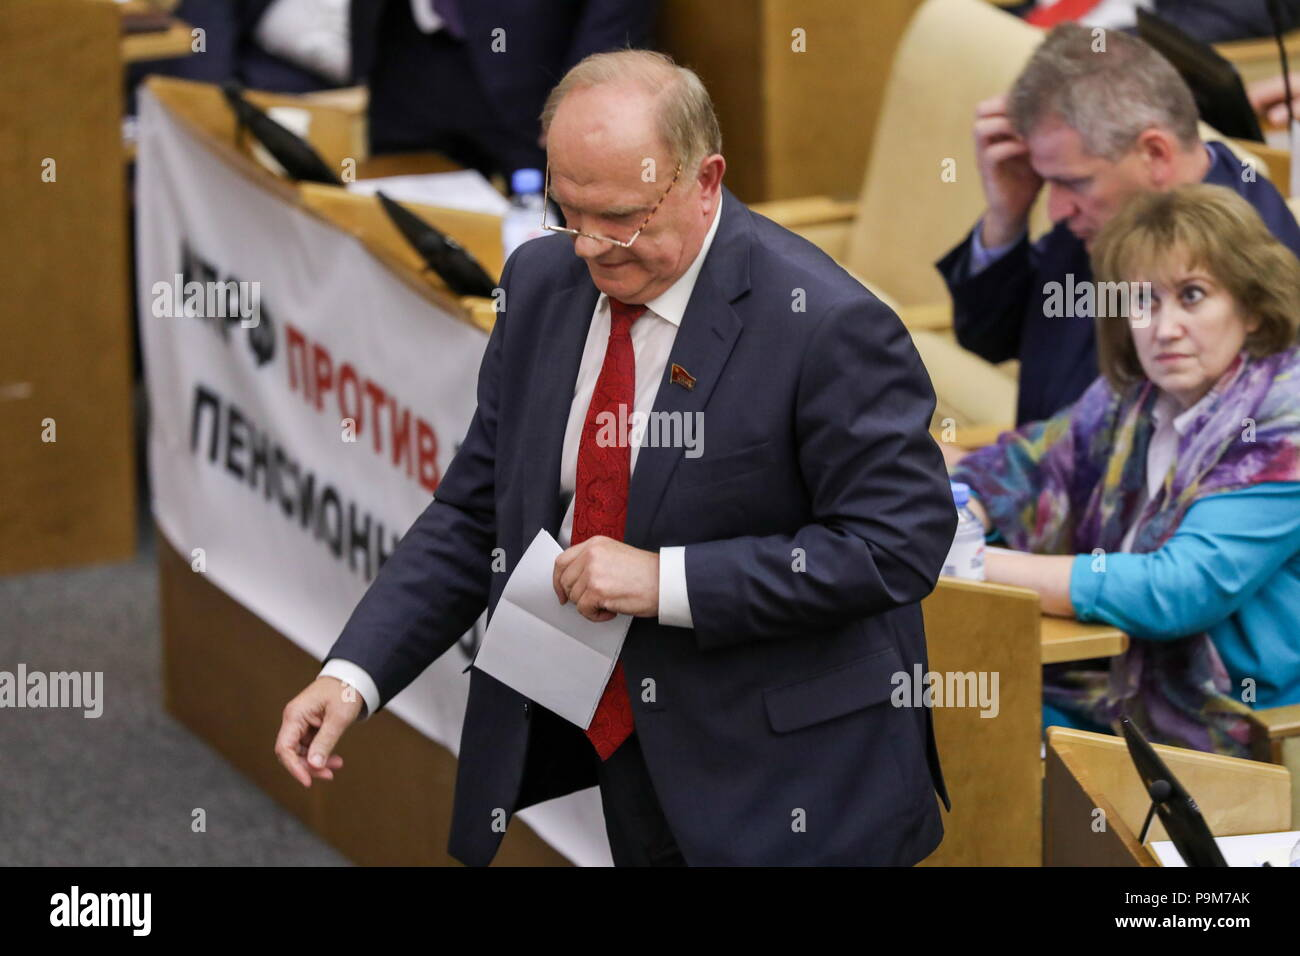 Moscow, Russia. 19th July, 2018. MOSCOW, RUSSIA - JULY 19, 2018: Russian Communist Party Leader Gennady Zyuganov at a plenary session of the Russian State Duma holding the first reading of a draft law to raise the retirement age from 60 to 65 for men, and from 55 to 63 for women over a 15-year period. Anton Novoderezhkin/TASS Credit: ITAR-TASS News Agency/Alamy Live News - Stock Image